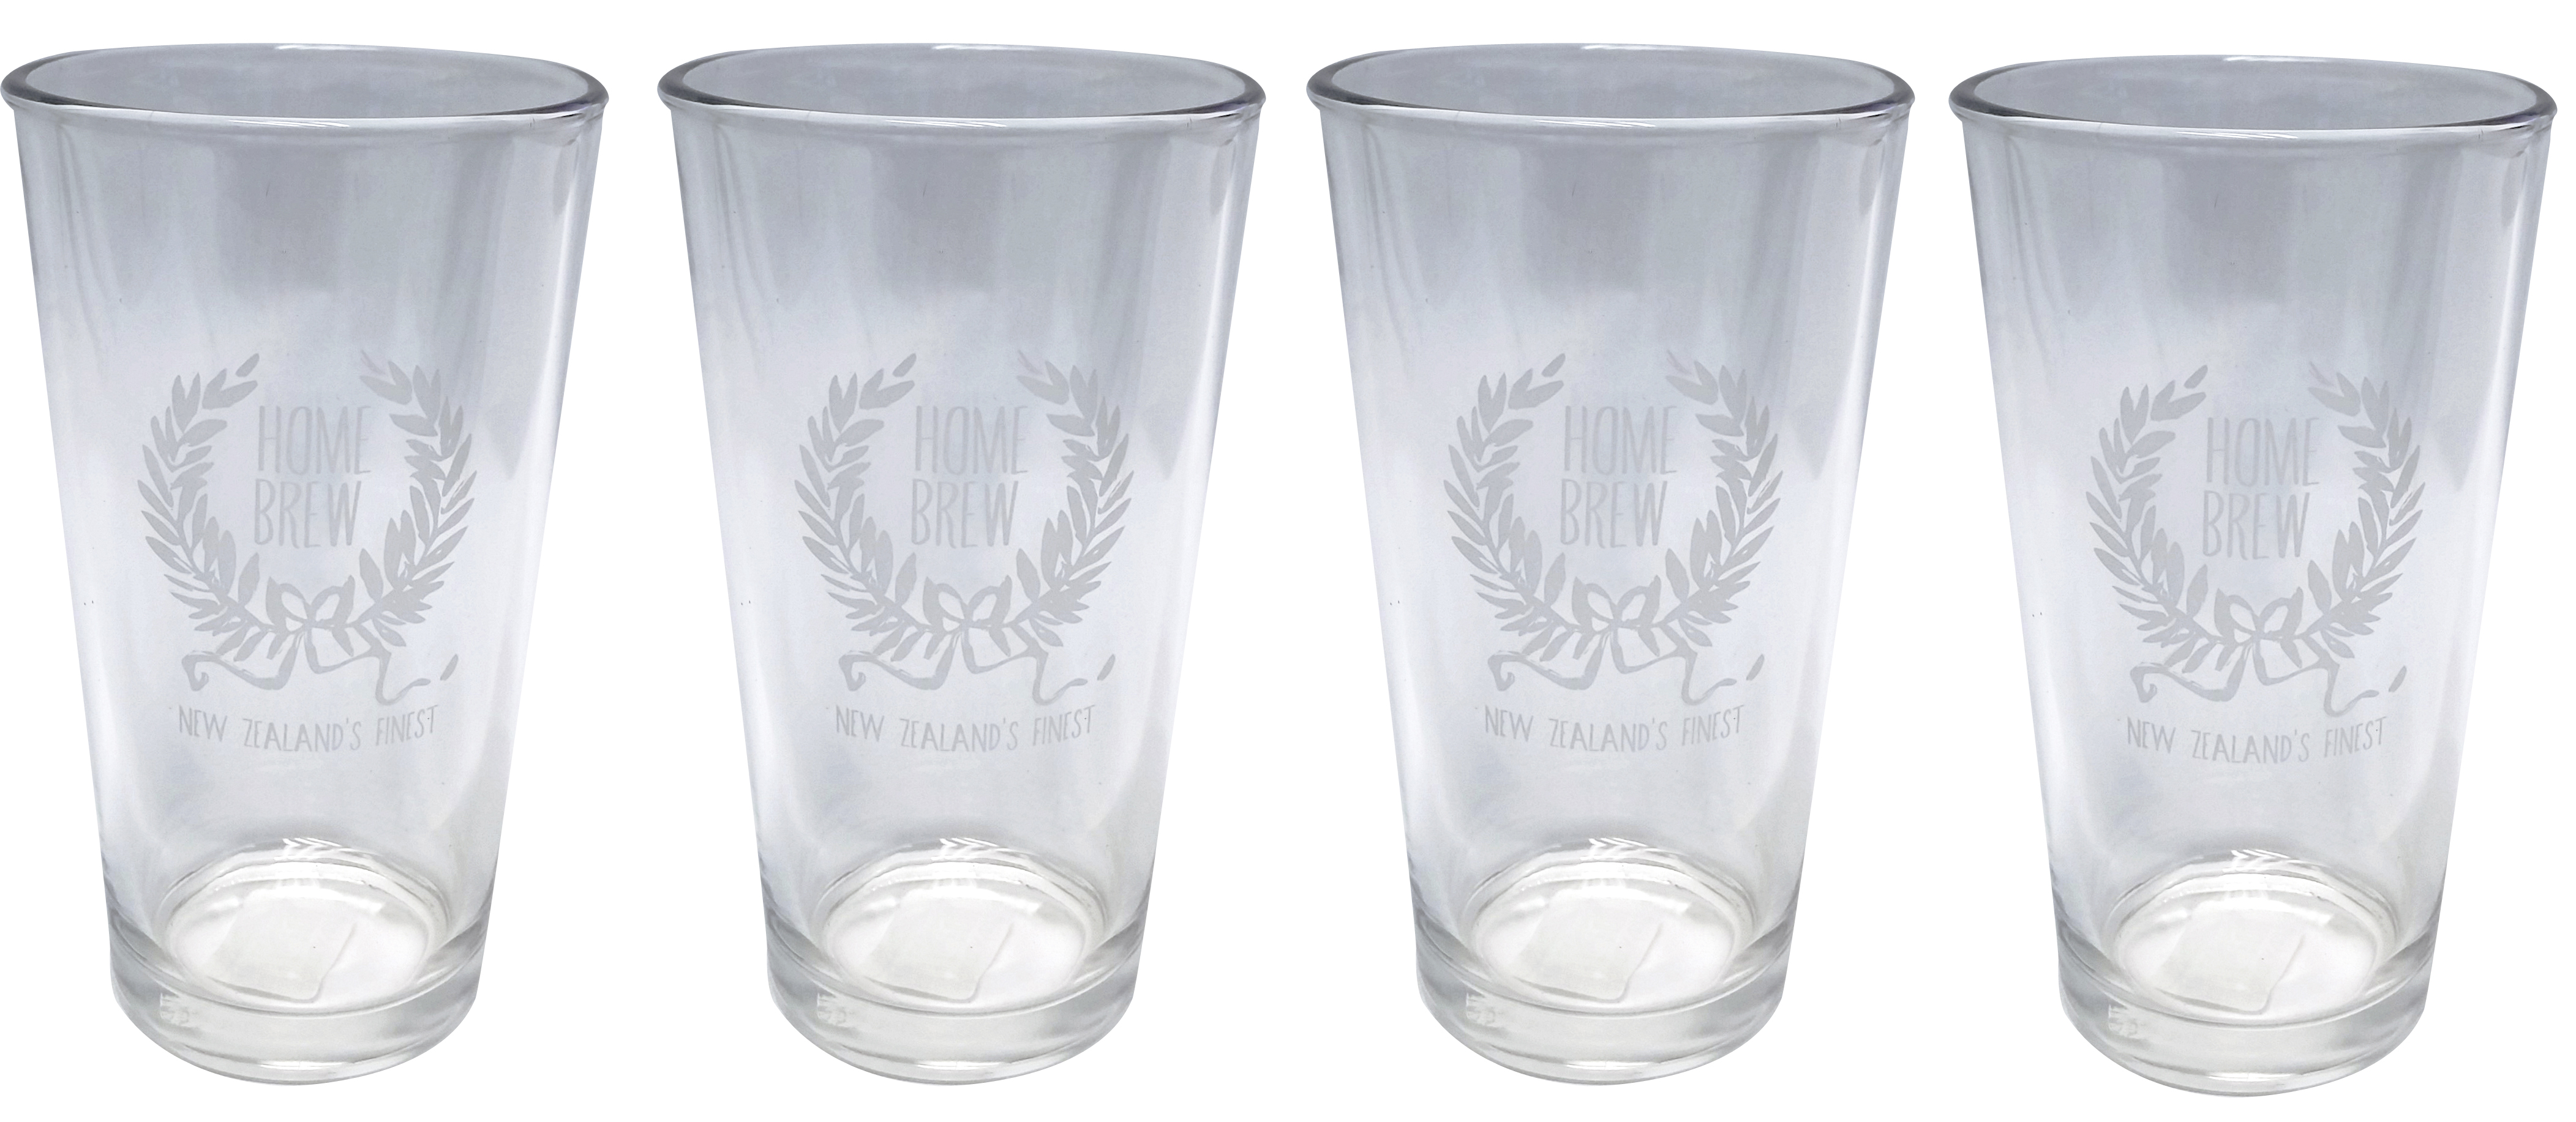 Home Brew Beer Glasses 500ml x 4